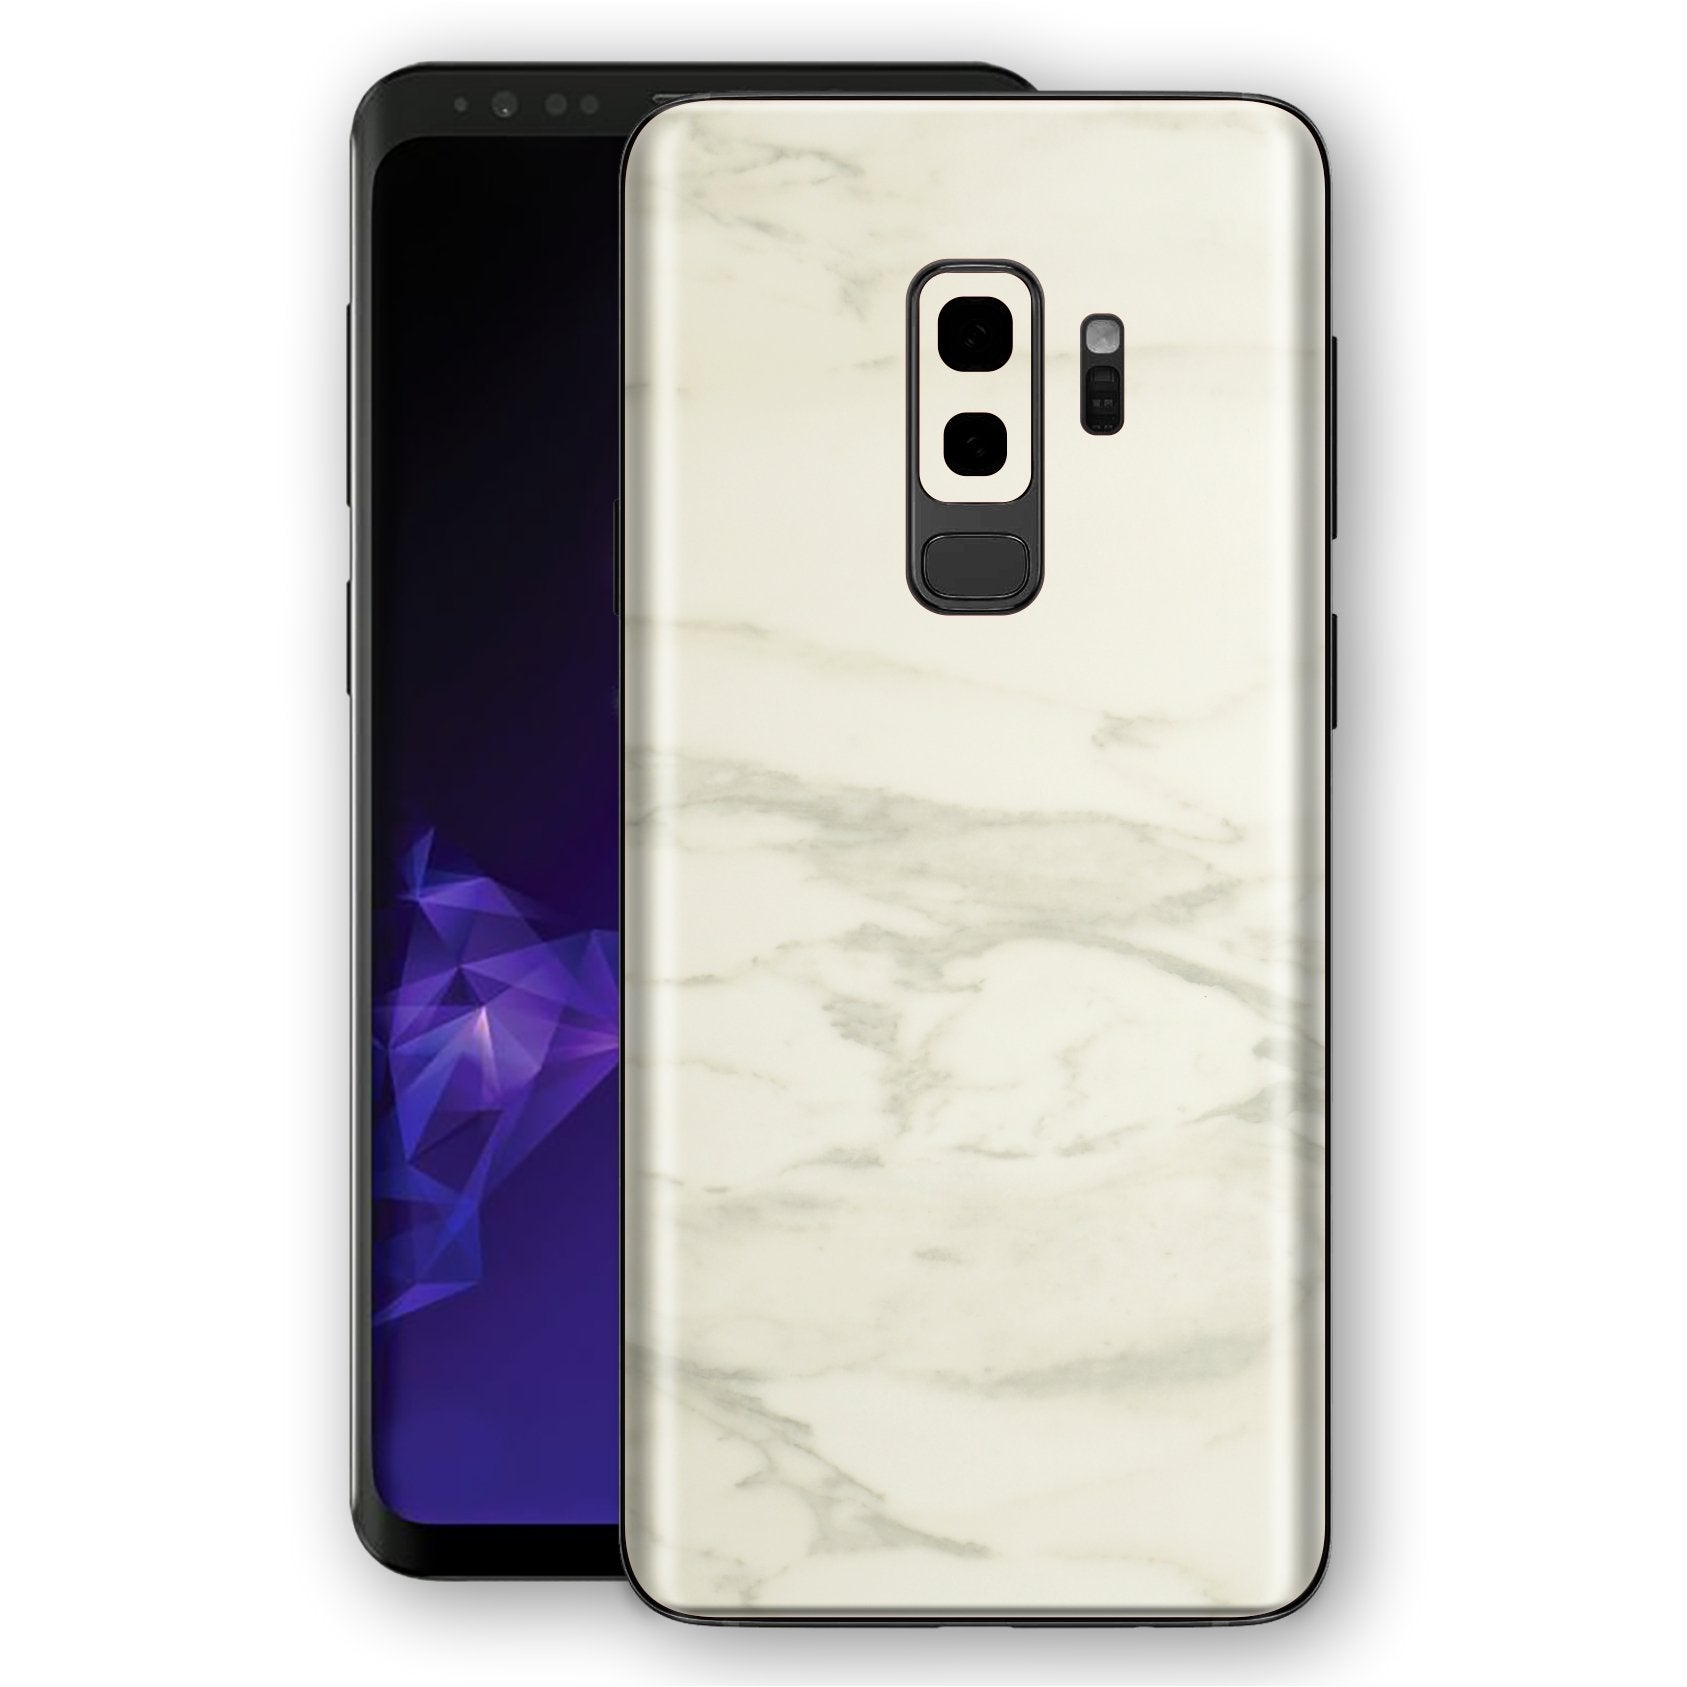 Samsung GALAXY S9+ PLUS Luxuria White Marble Skin Wrap Decal Protector | EasySkinz